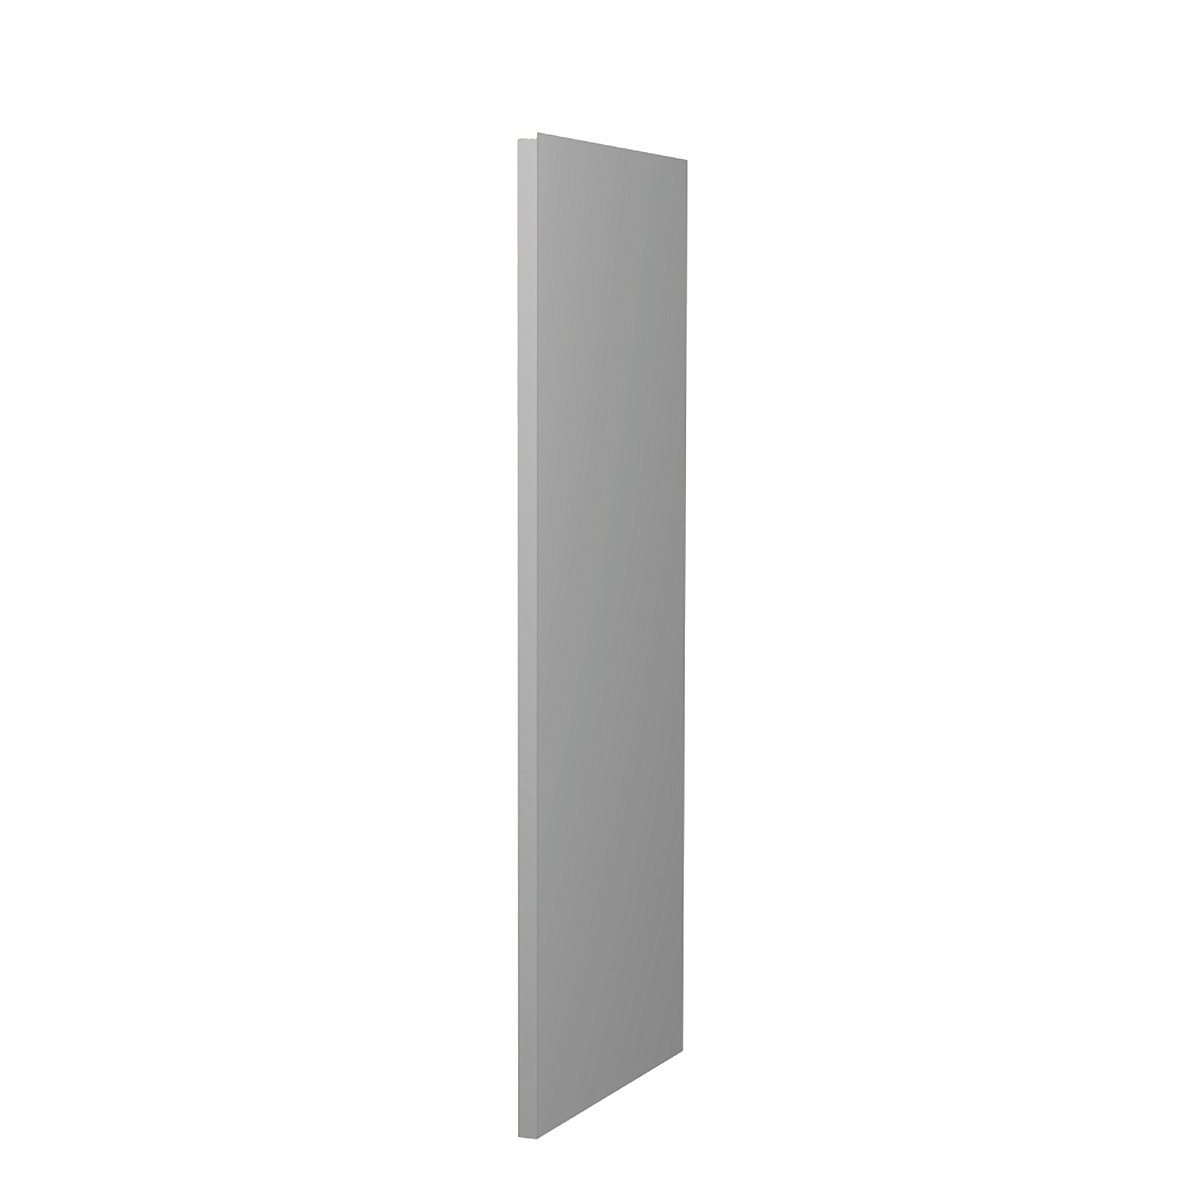 Orlando Grey Gloss Kitchen Wall Unit End Panel Travis Perkins - Grey kitchen wall units